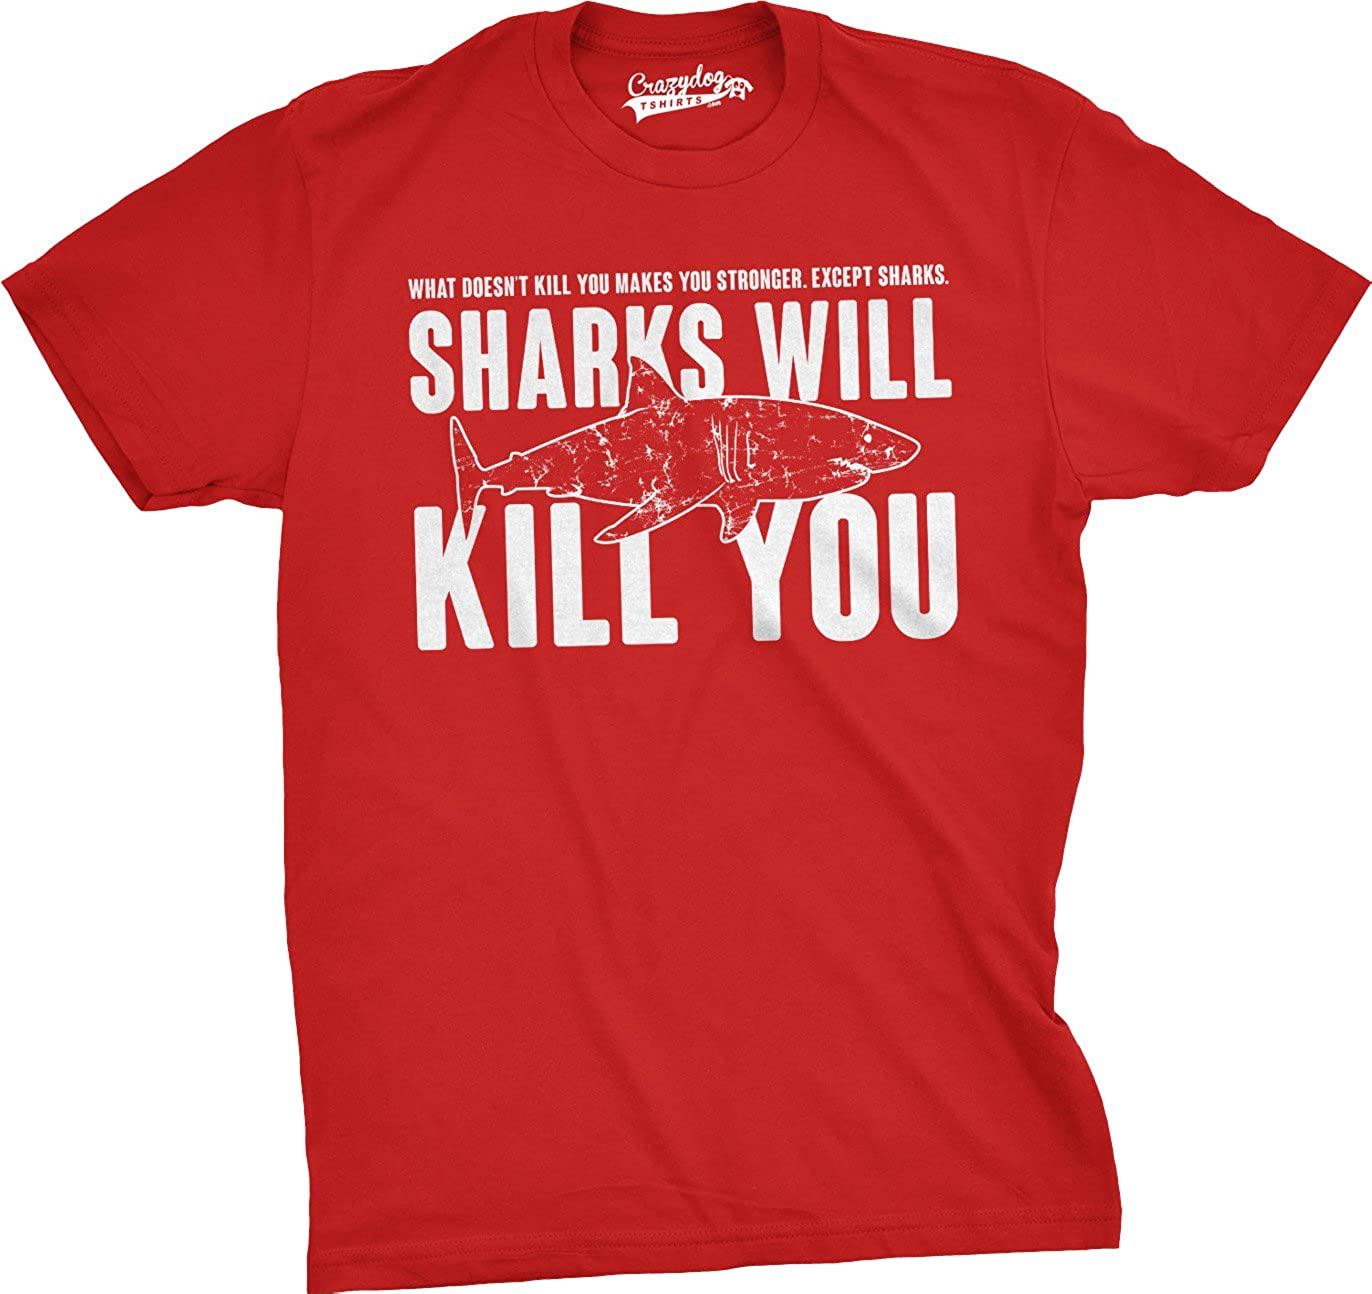 efdc0fd3 Amazon.com: Mens Sharks Will Kill You Funny T Shirt Sarcasm Novelty  Offensive Tee for Guys: Clothing